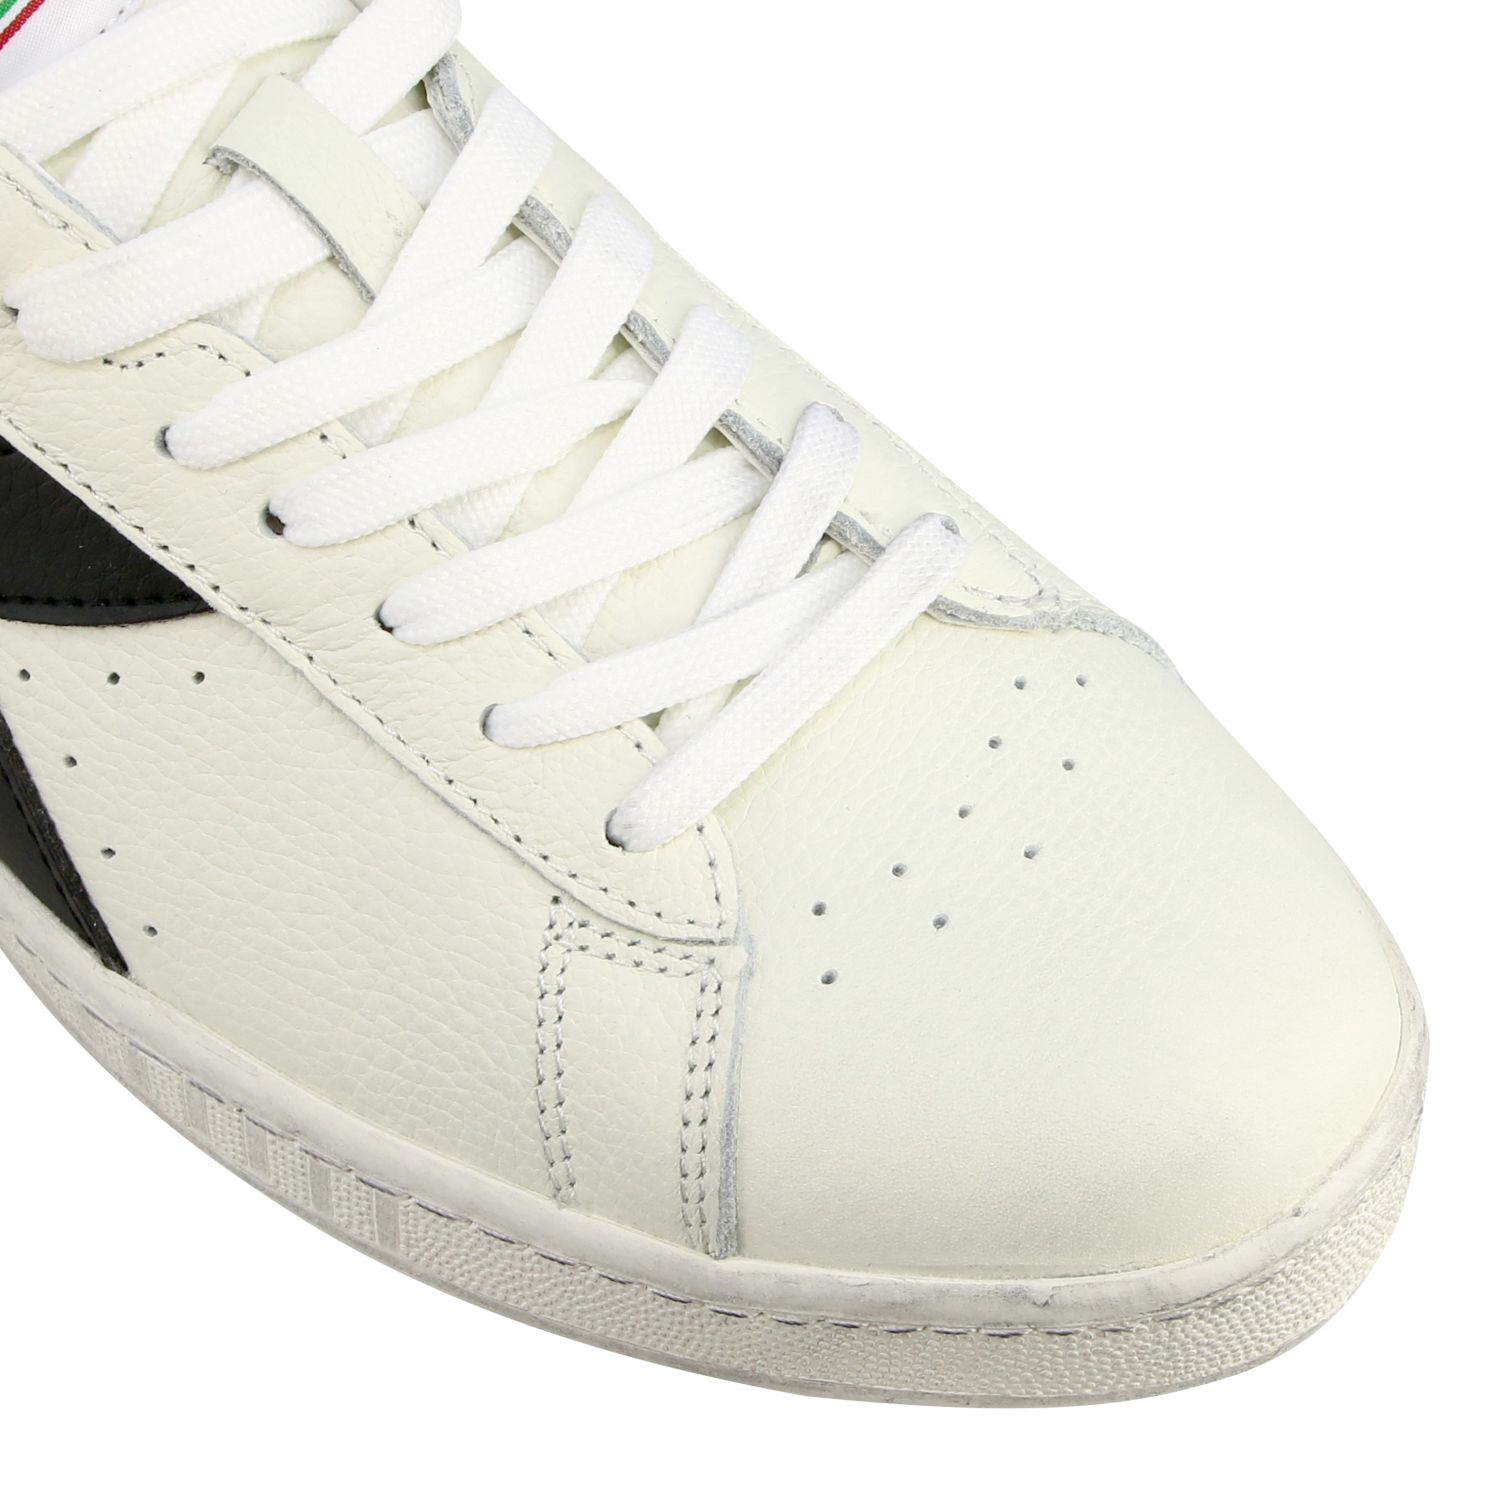 Sneakers Diadora: Diadora Game l low waxed sneakers in textured leather white 1 4